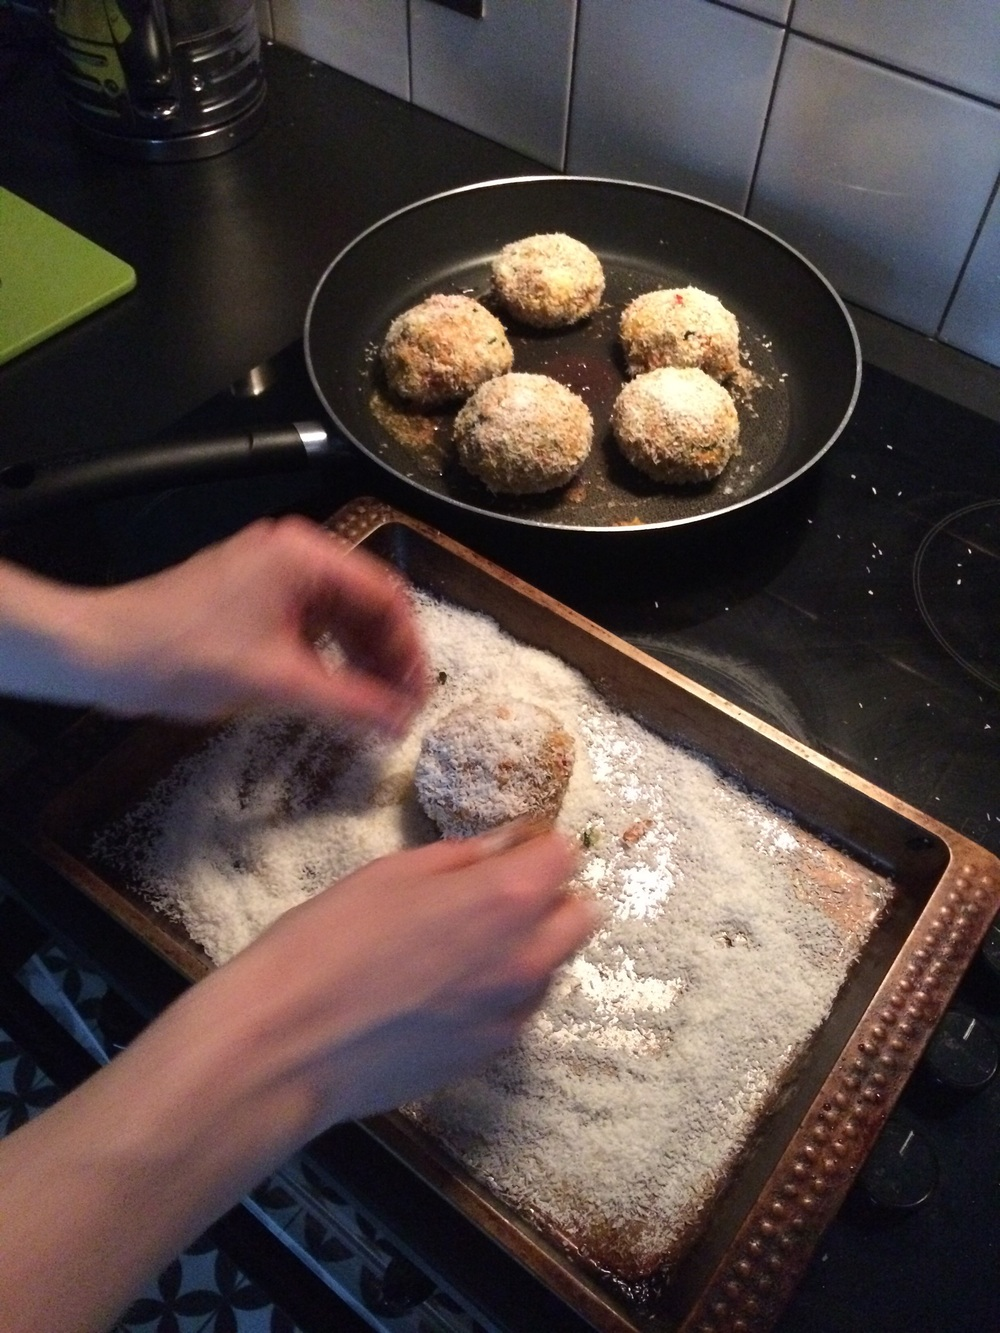 Here I am wrecking the kitchen while rolling the burgers in some coconut for a sweeter outer texture.